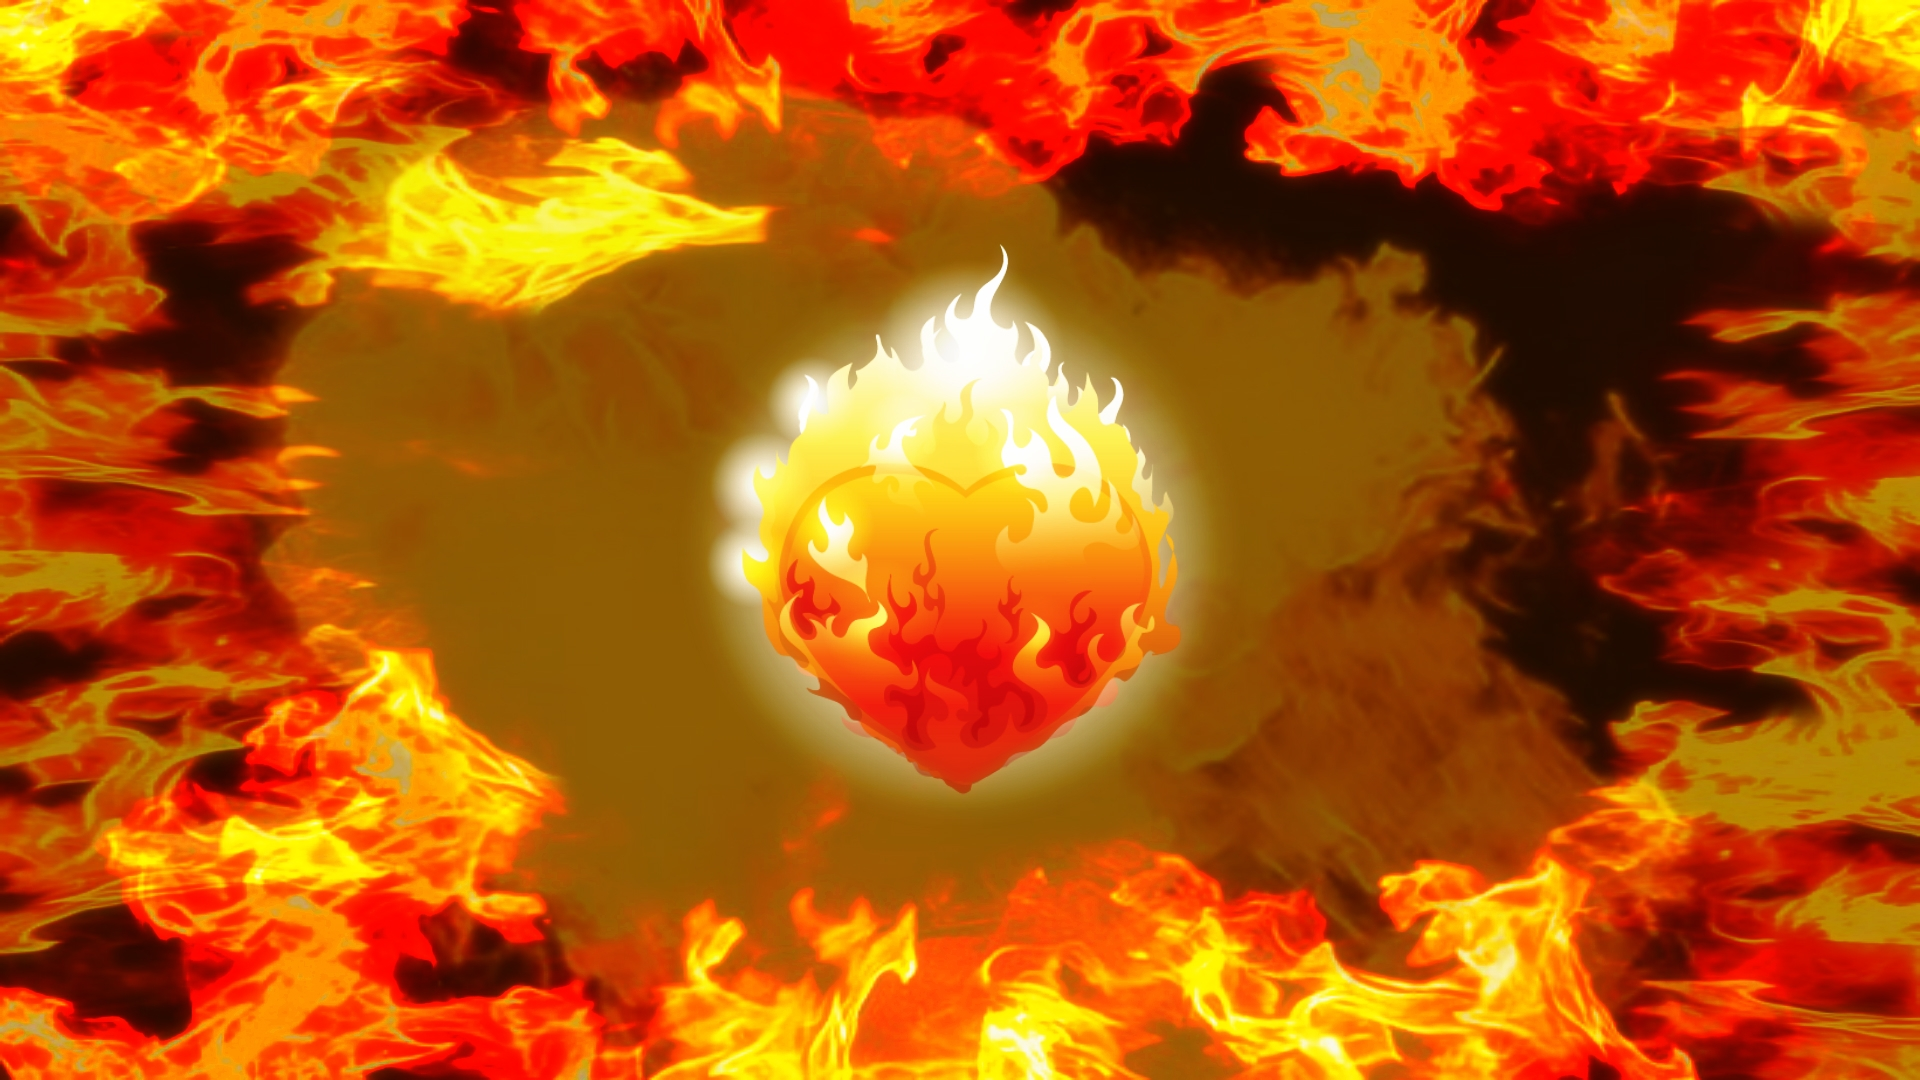 Artistic Fire Flame Heart Wallpapers